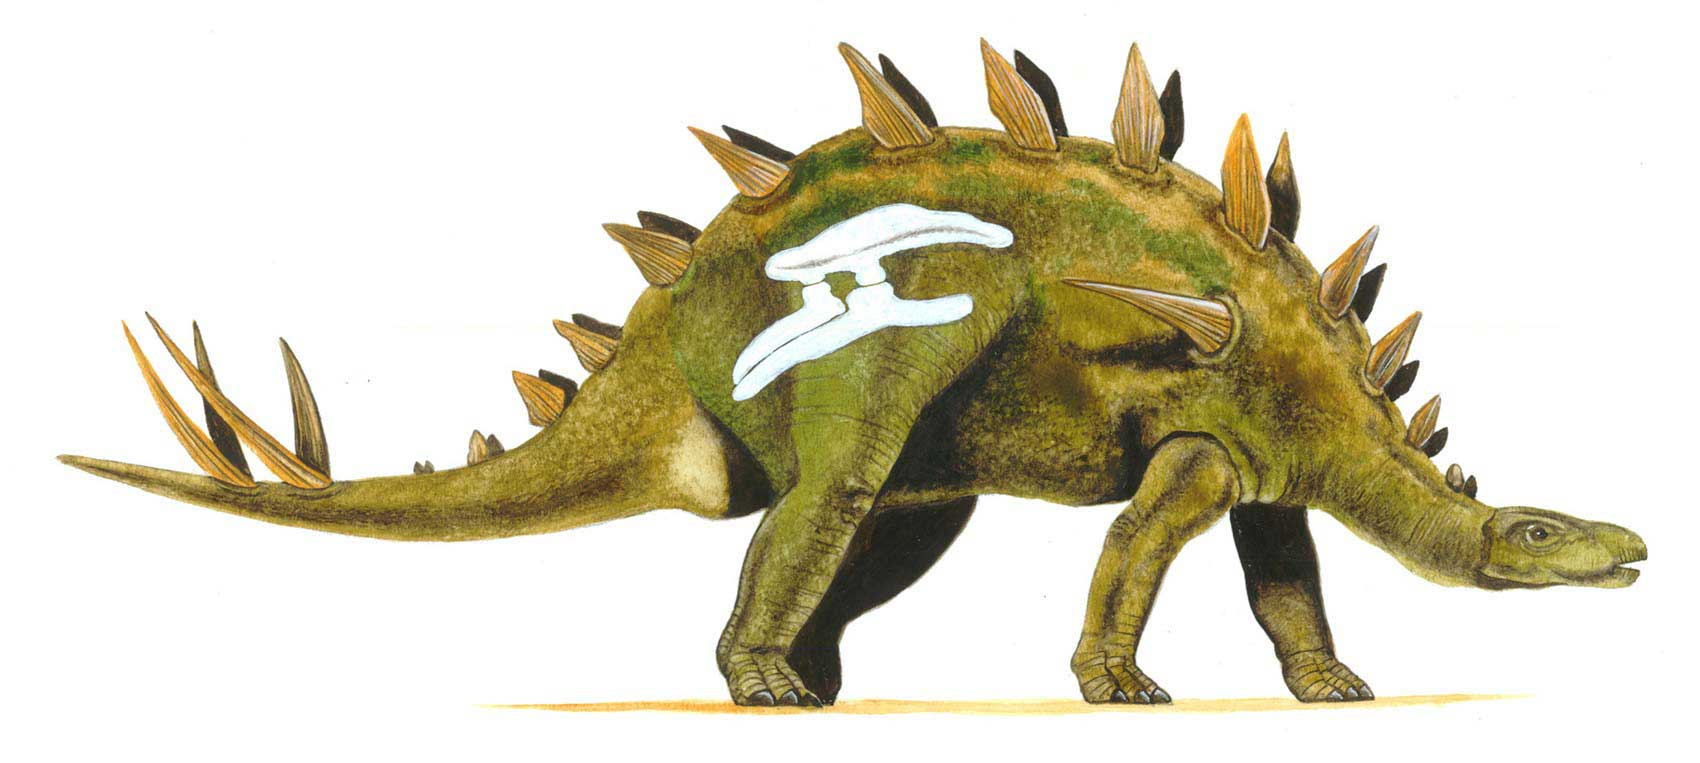 illustration-realistic-animals-dinosaur-stegosaurus